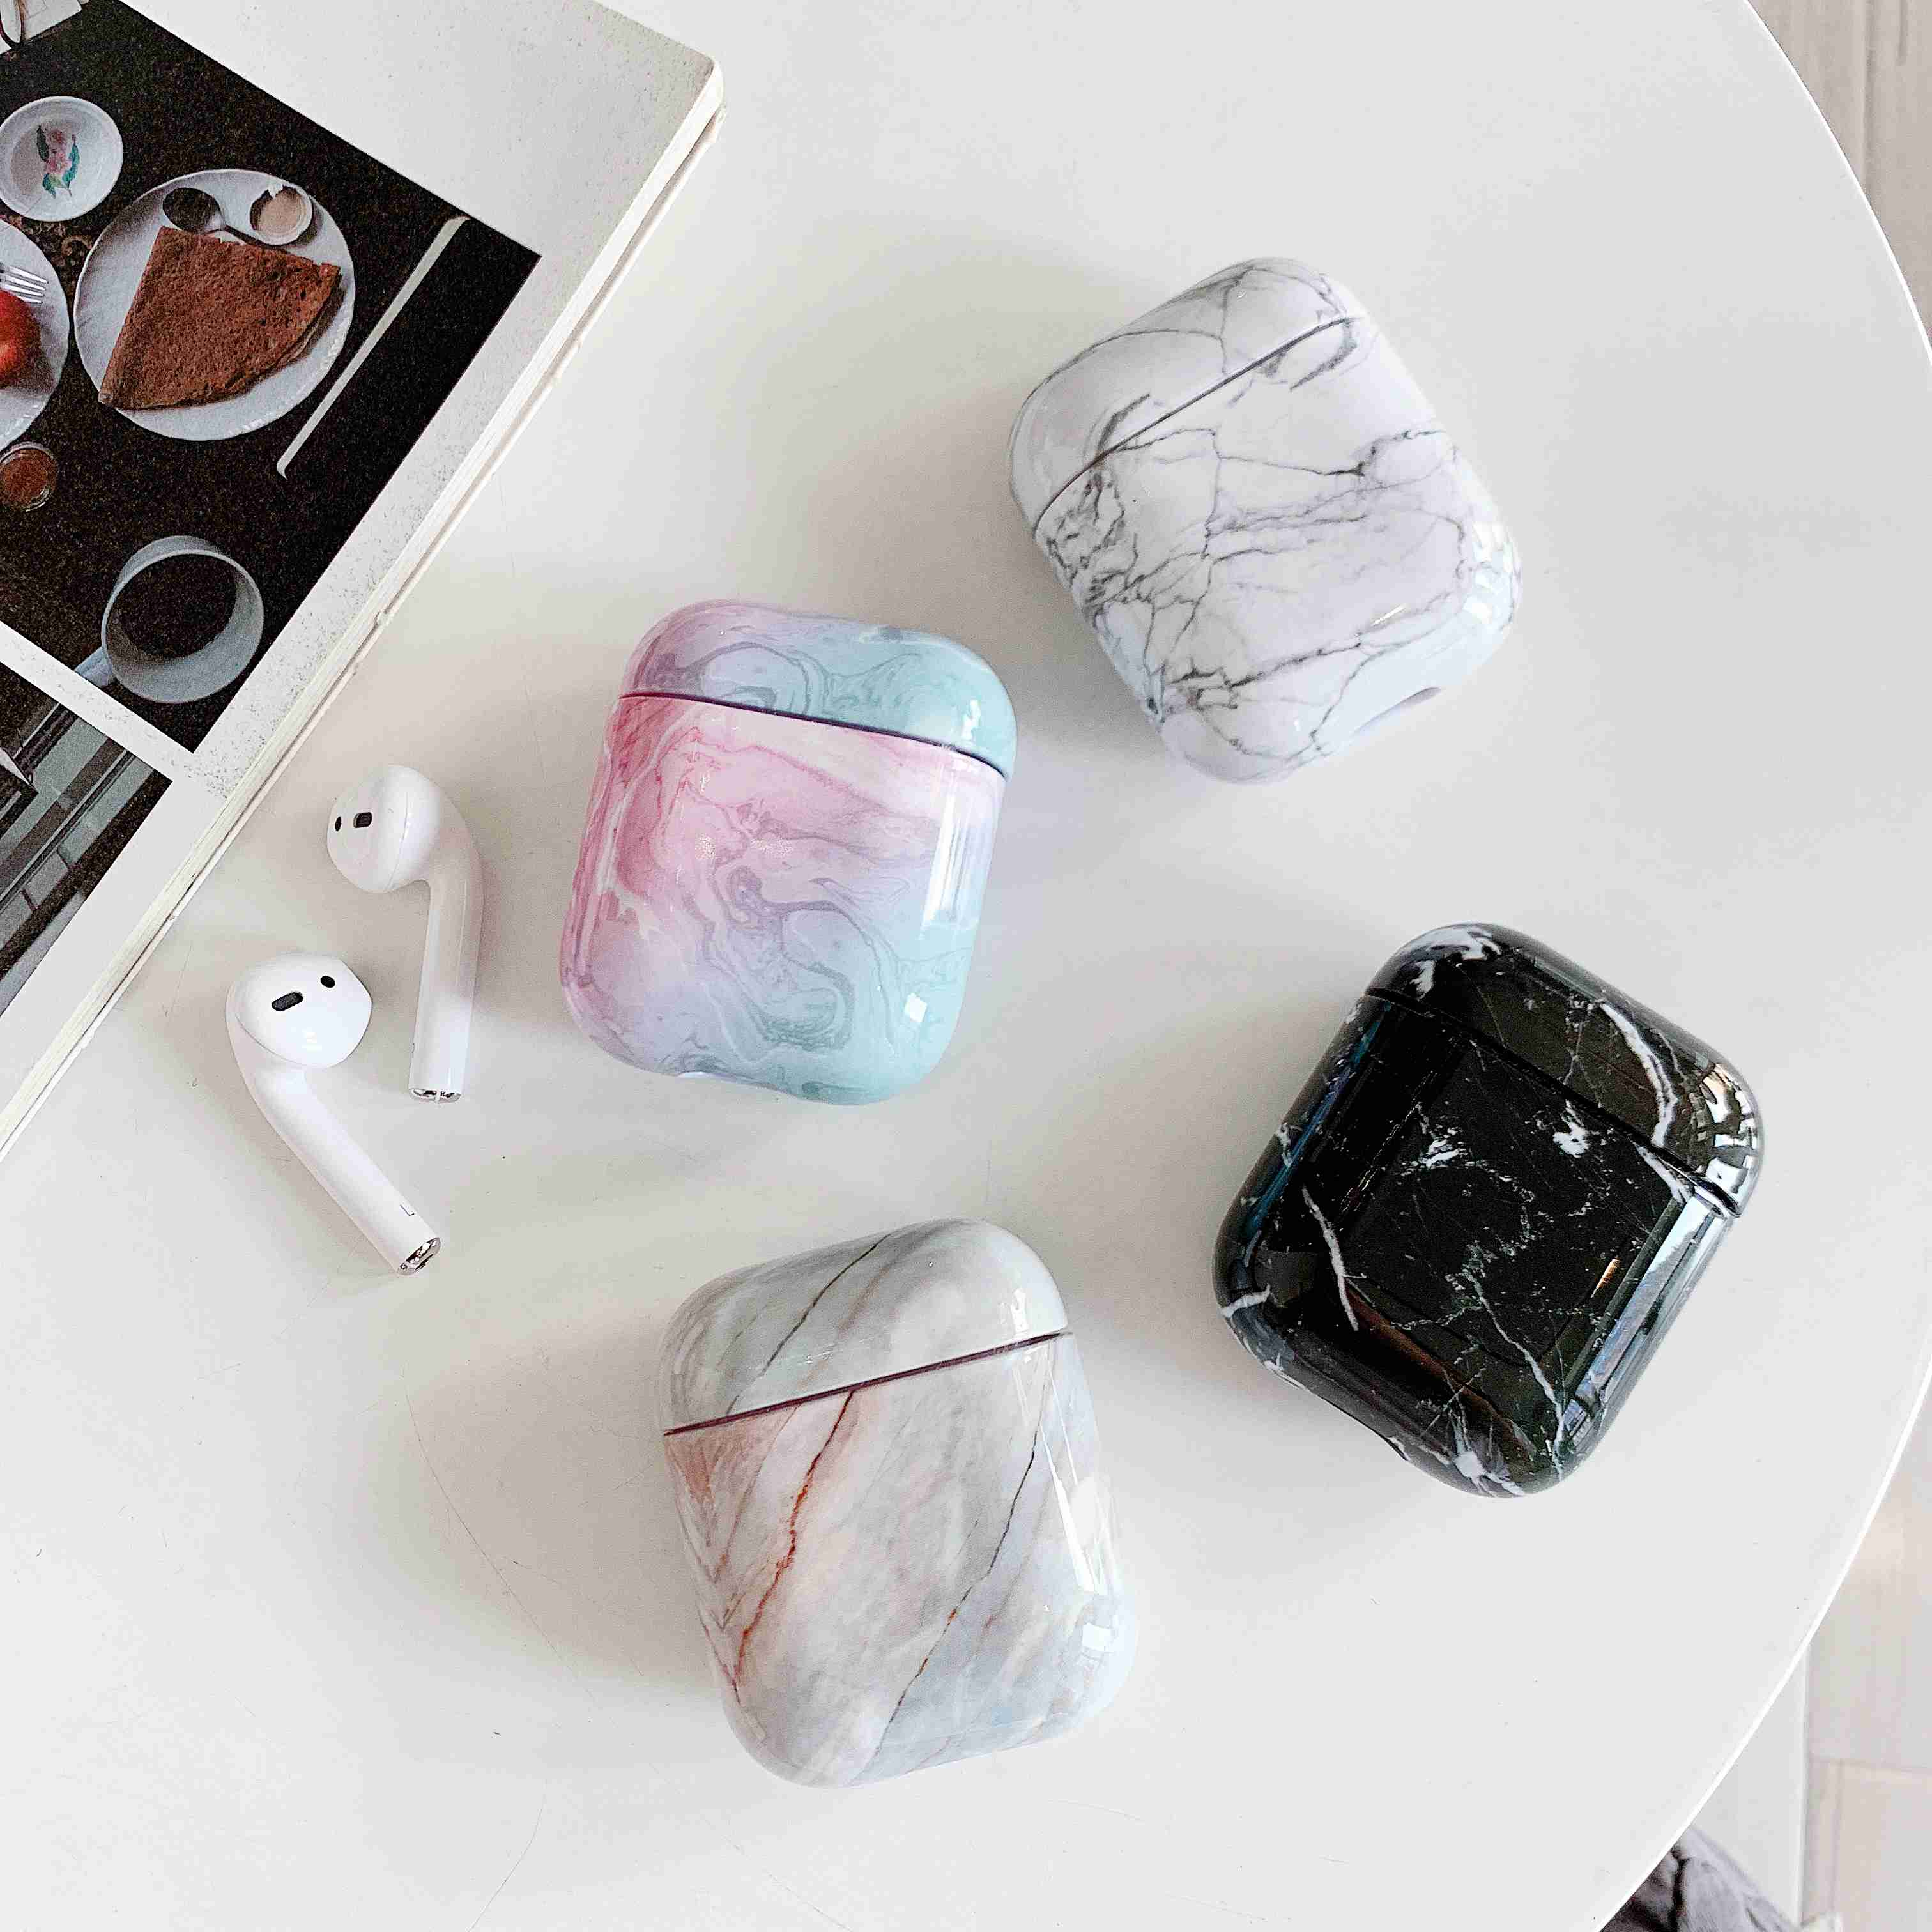 Case For Original Apple Airpods Case Marble Cute Cover For Apple Airpods 2 1 Case Accessories Headphone Air Pods Case Box Coque